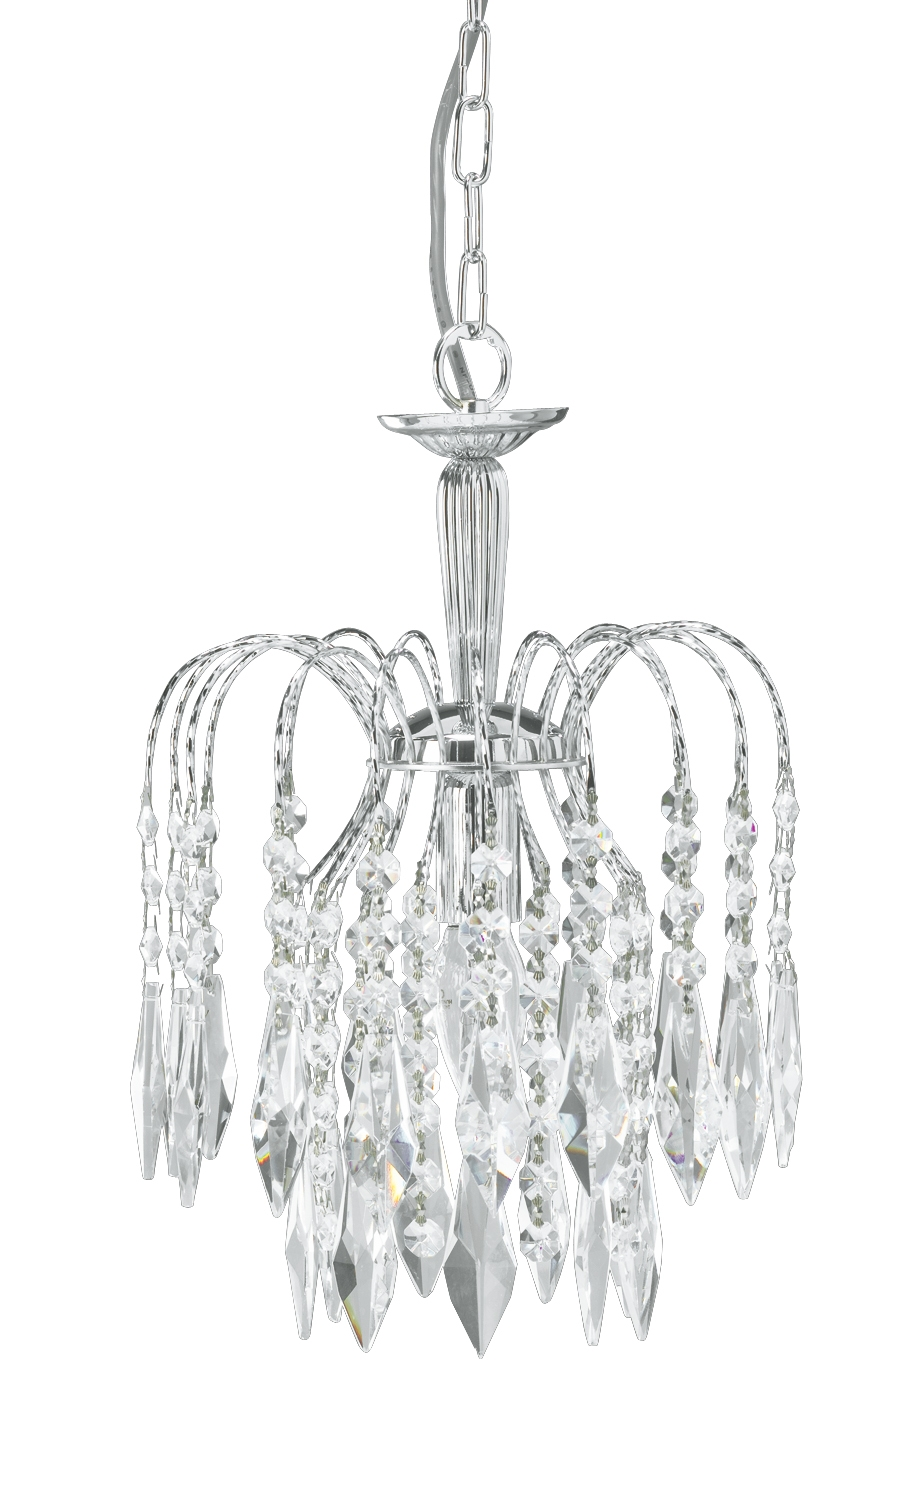 Waterfall Small Chandelier Chrome Pertaining To Small Chrome Chandelier (#12 of 12)